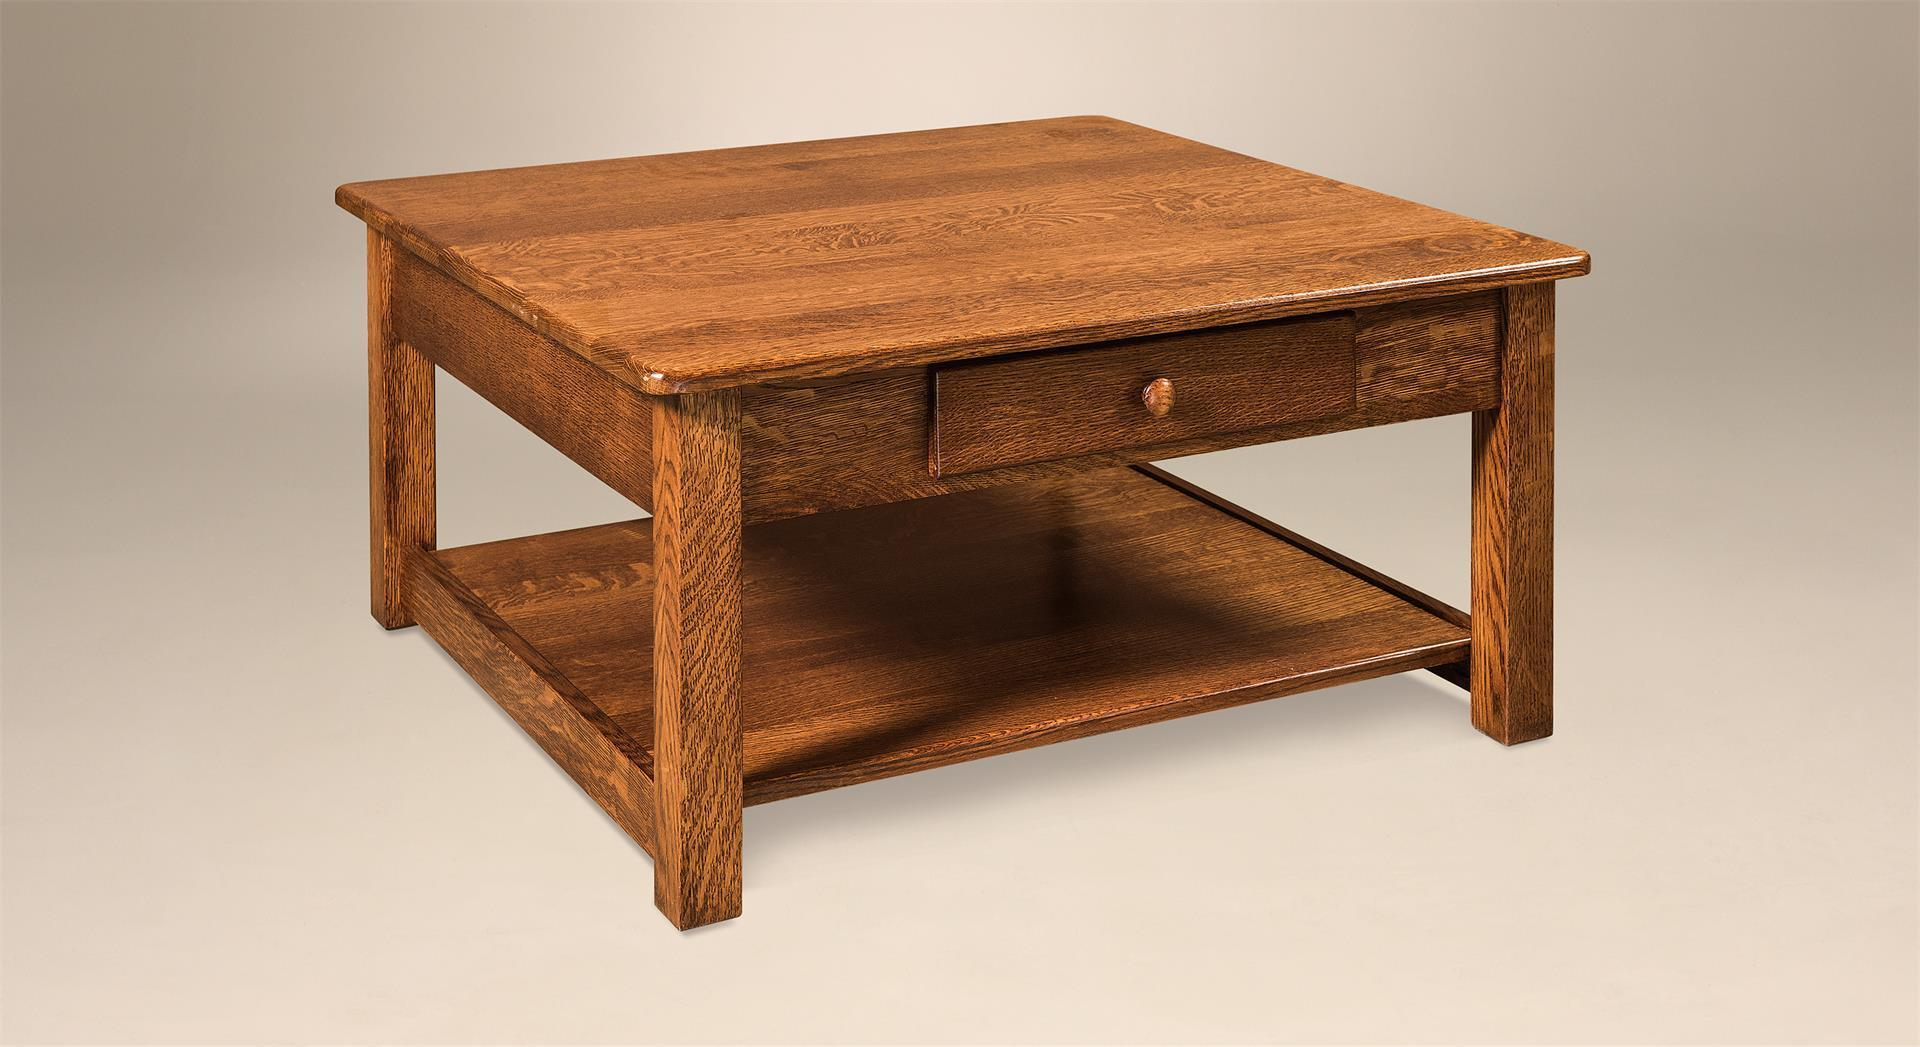 Contemporary Mission 36 Or 40 Square Coffee Table From